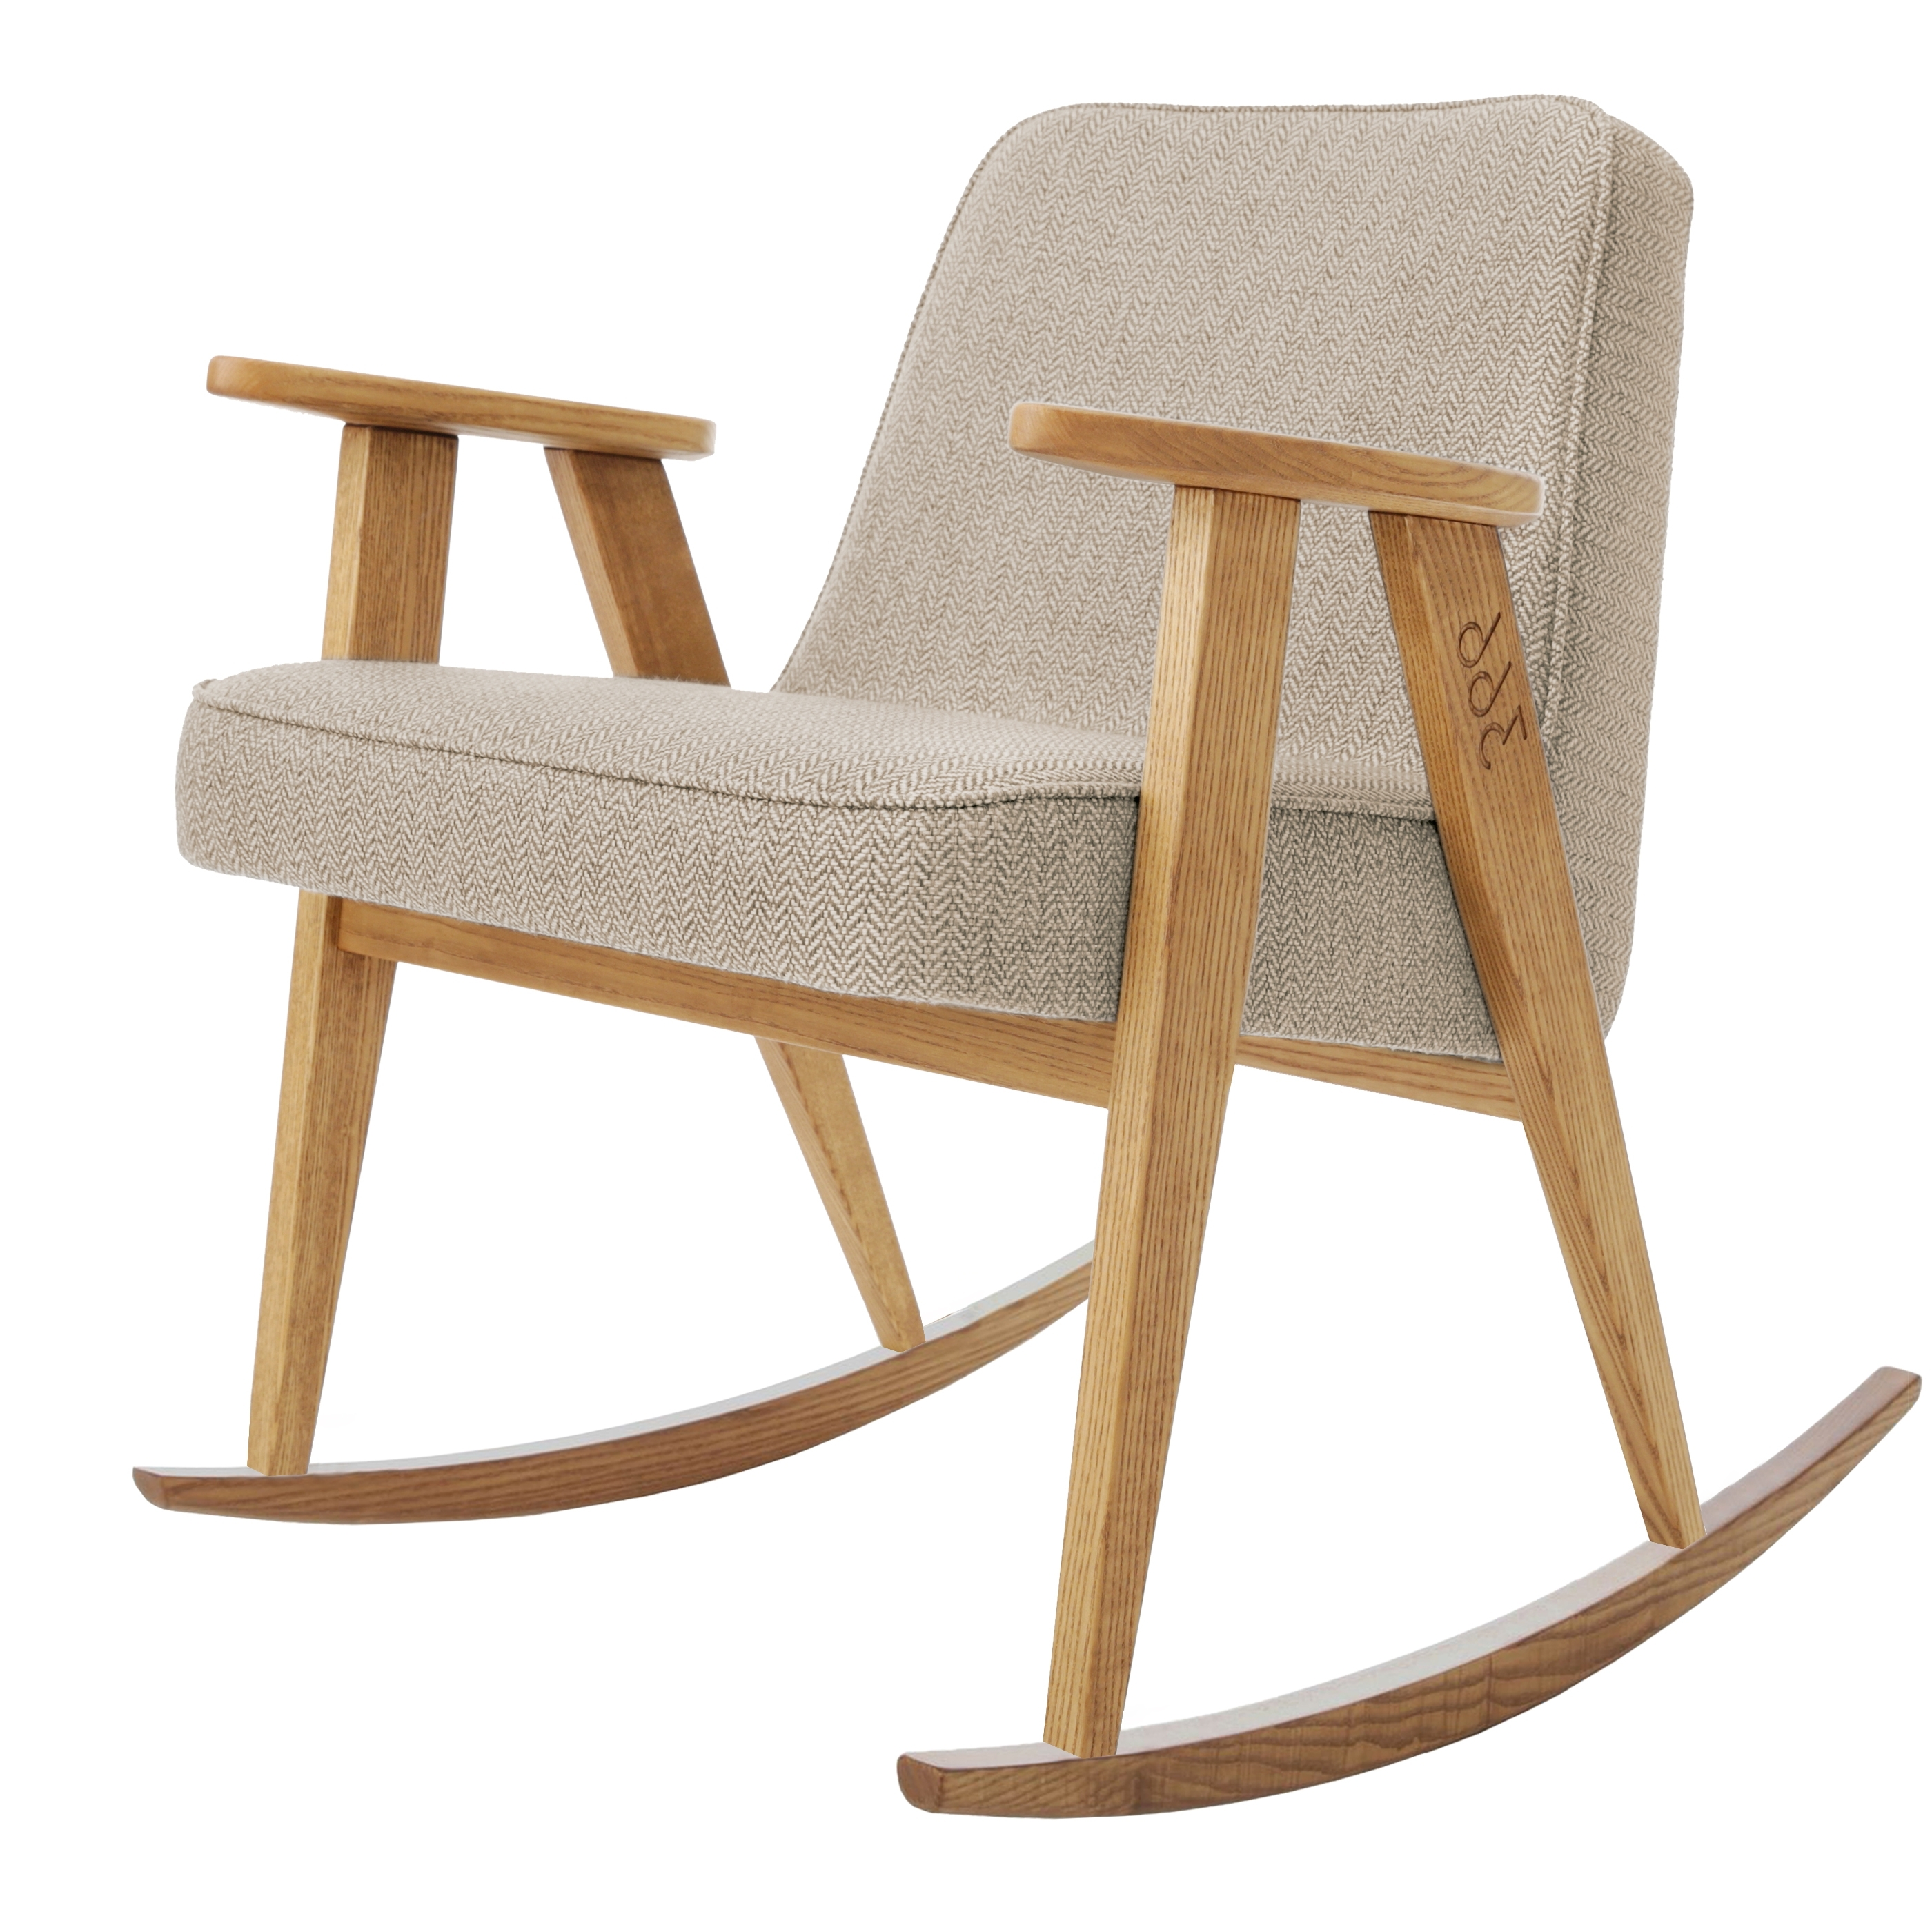 Fashionable 366 Rocking Chair Tweed – No Wódka Online Shop With Rocking Chairs With Footrest (View 17 of 20)